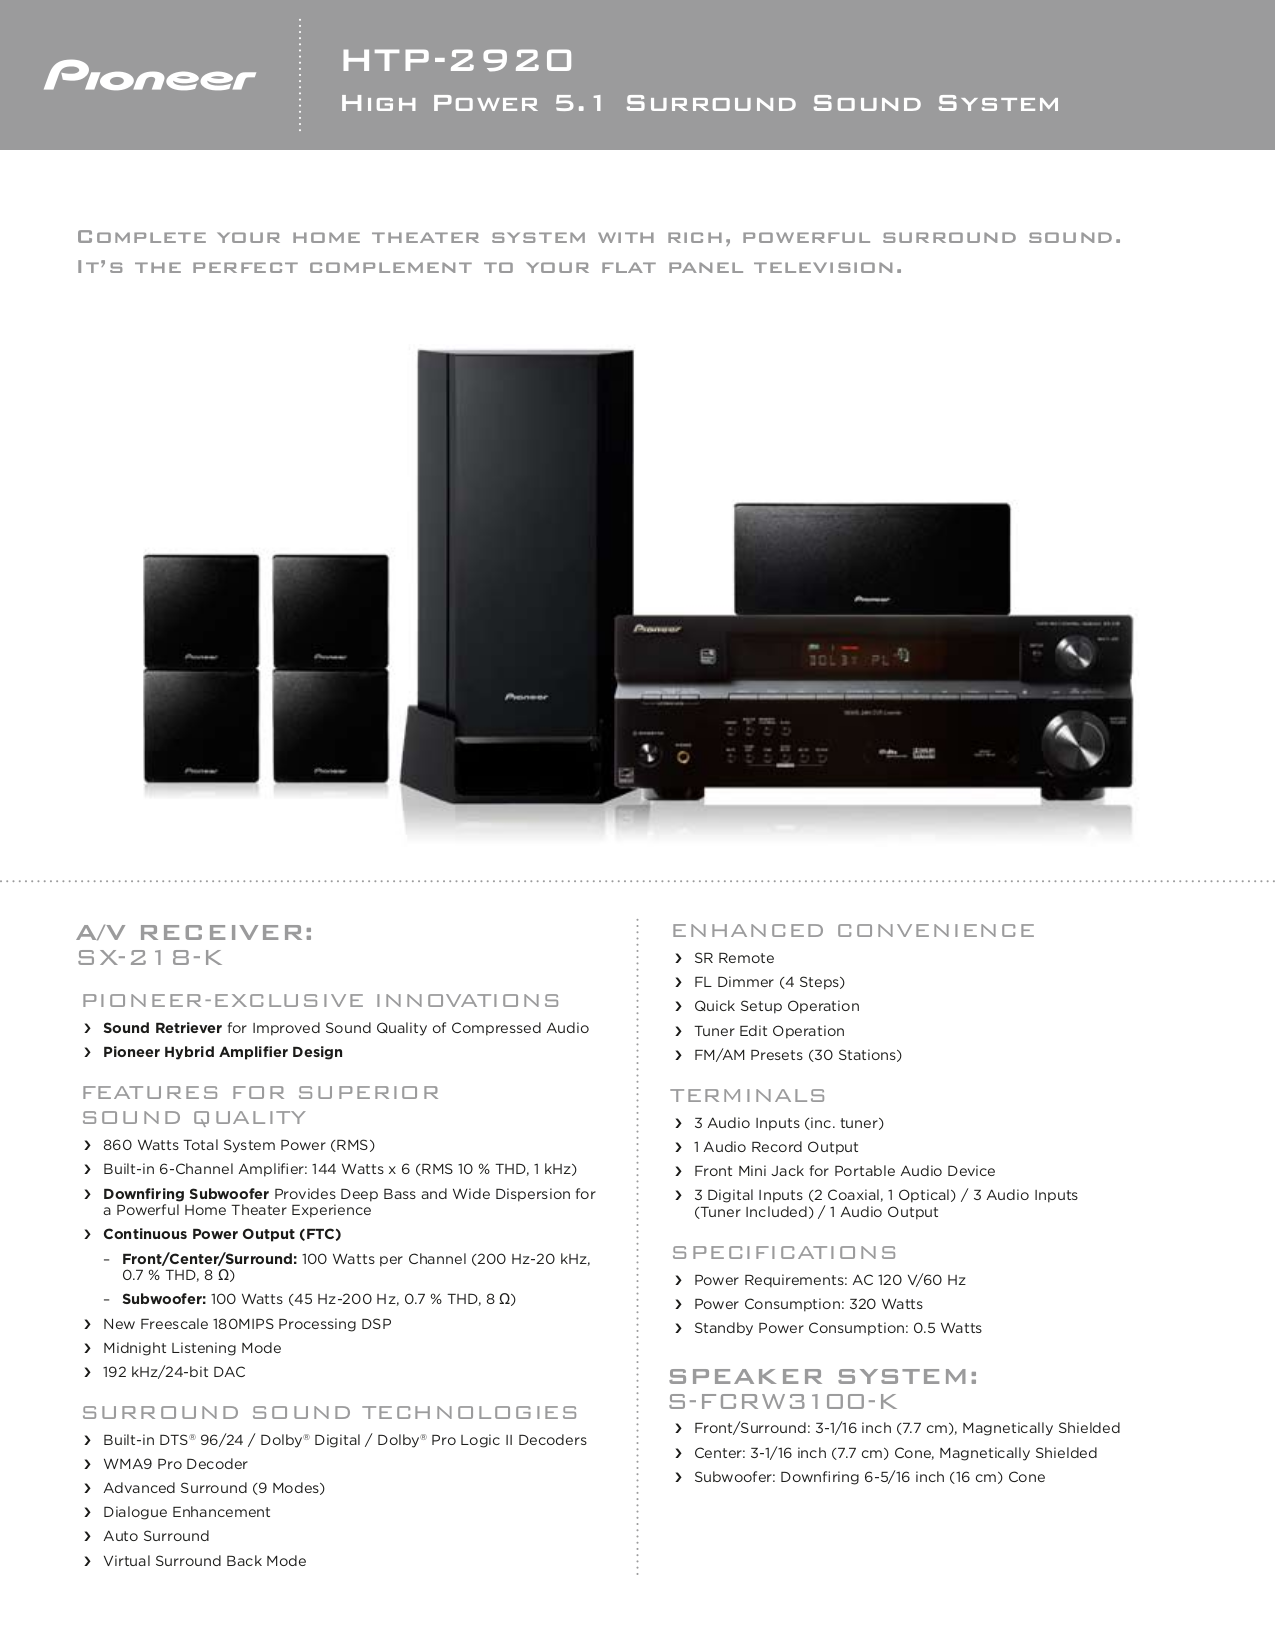 download free pdf for pioneer htp 2920 home theater manual rh umlib com pioneer home theater instruction manual home theater pioneer htp074 manual